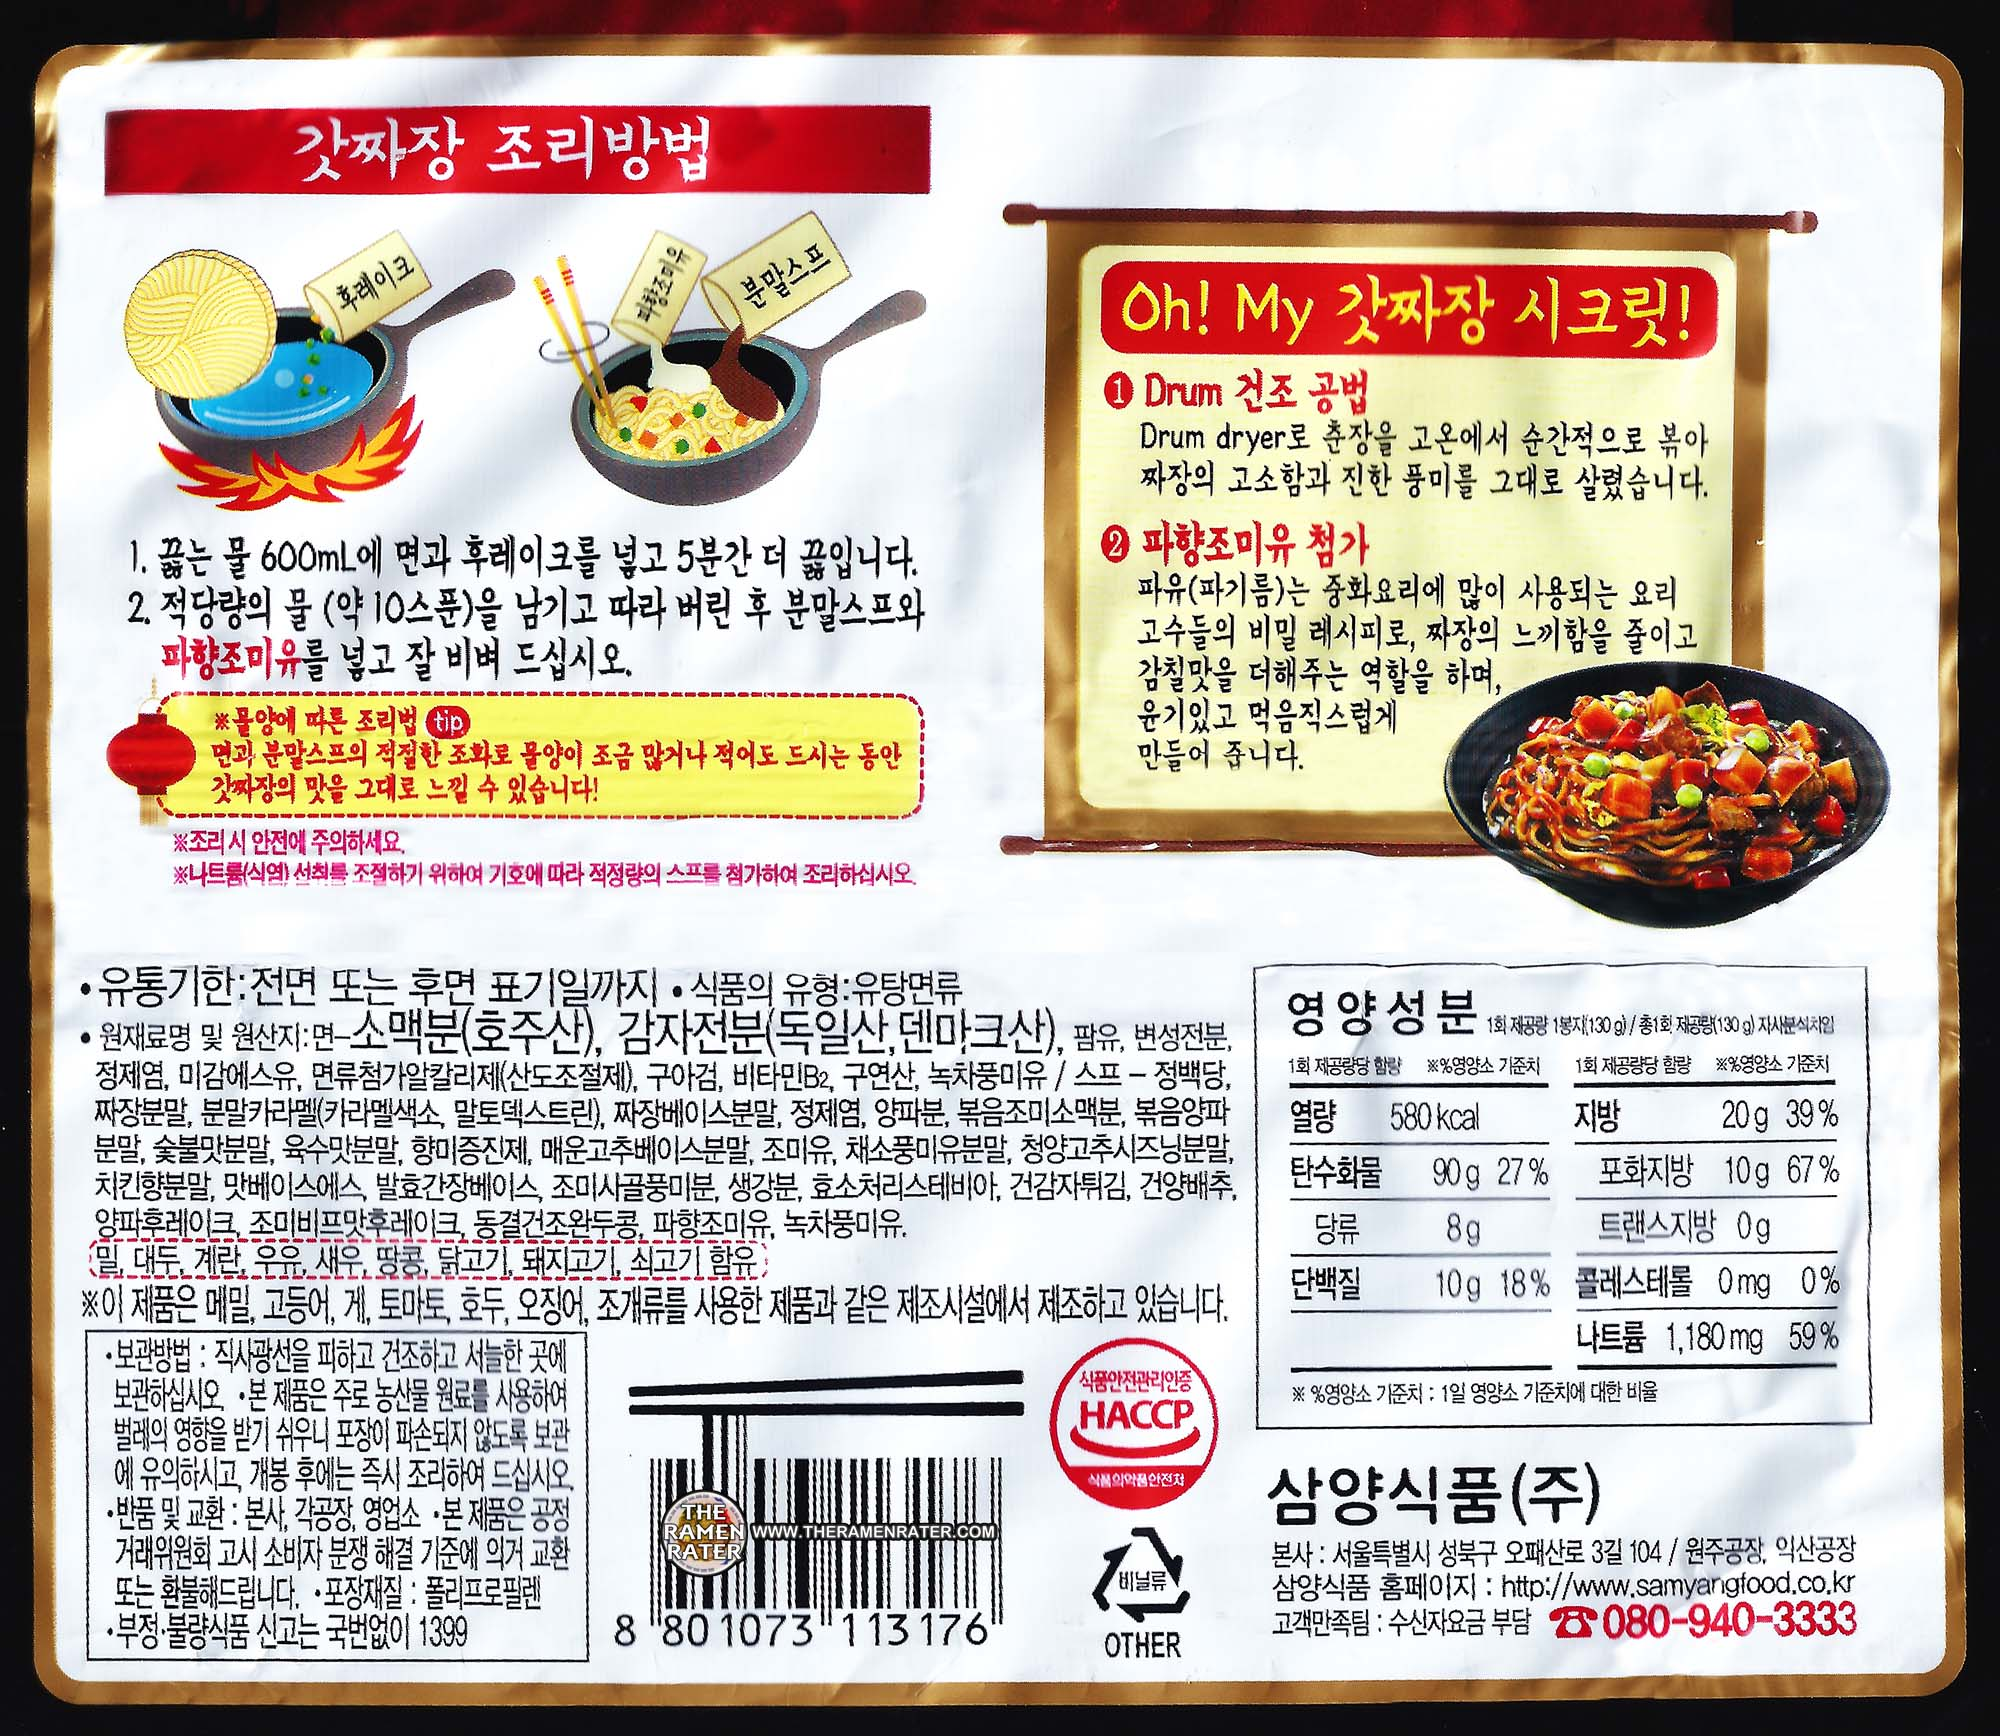 Re Review Samyang Foods Fresh Jjajang The Ramen Rater Unsure Whether It Contains Meat To Prepare Add Noodles And Vegetables 600ml Boiling Water Cook For 4 Minutes Drain In Contents Of Powder